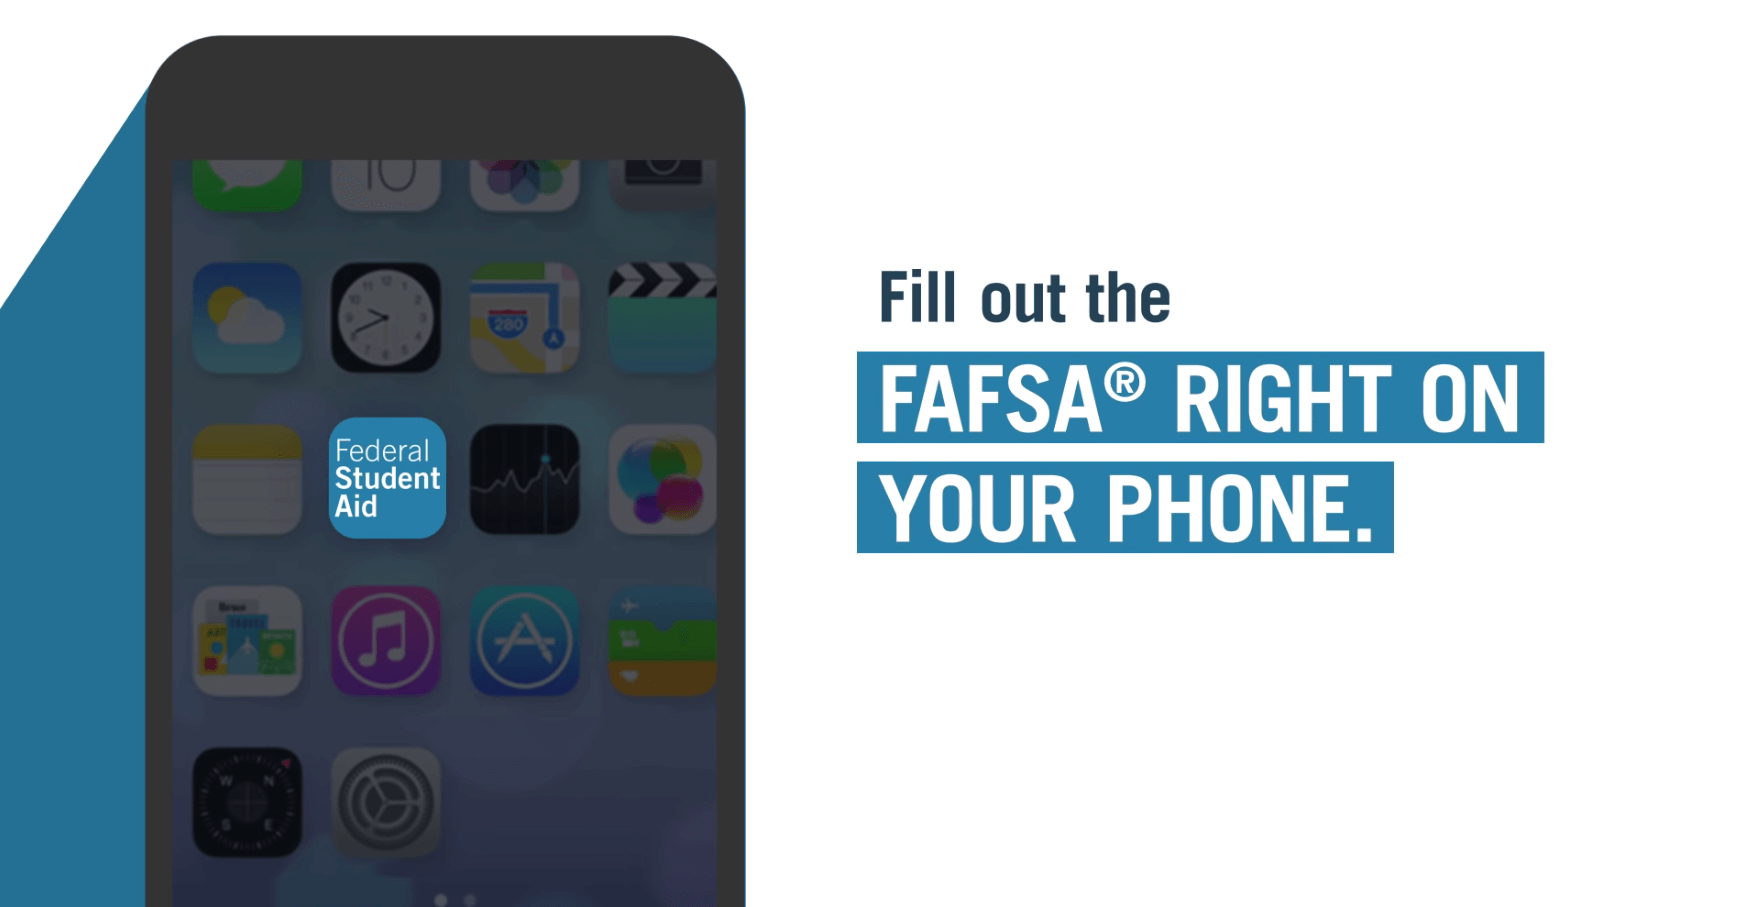 Video introducing the FAFSA mobile app